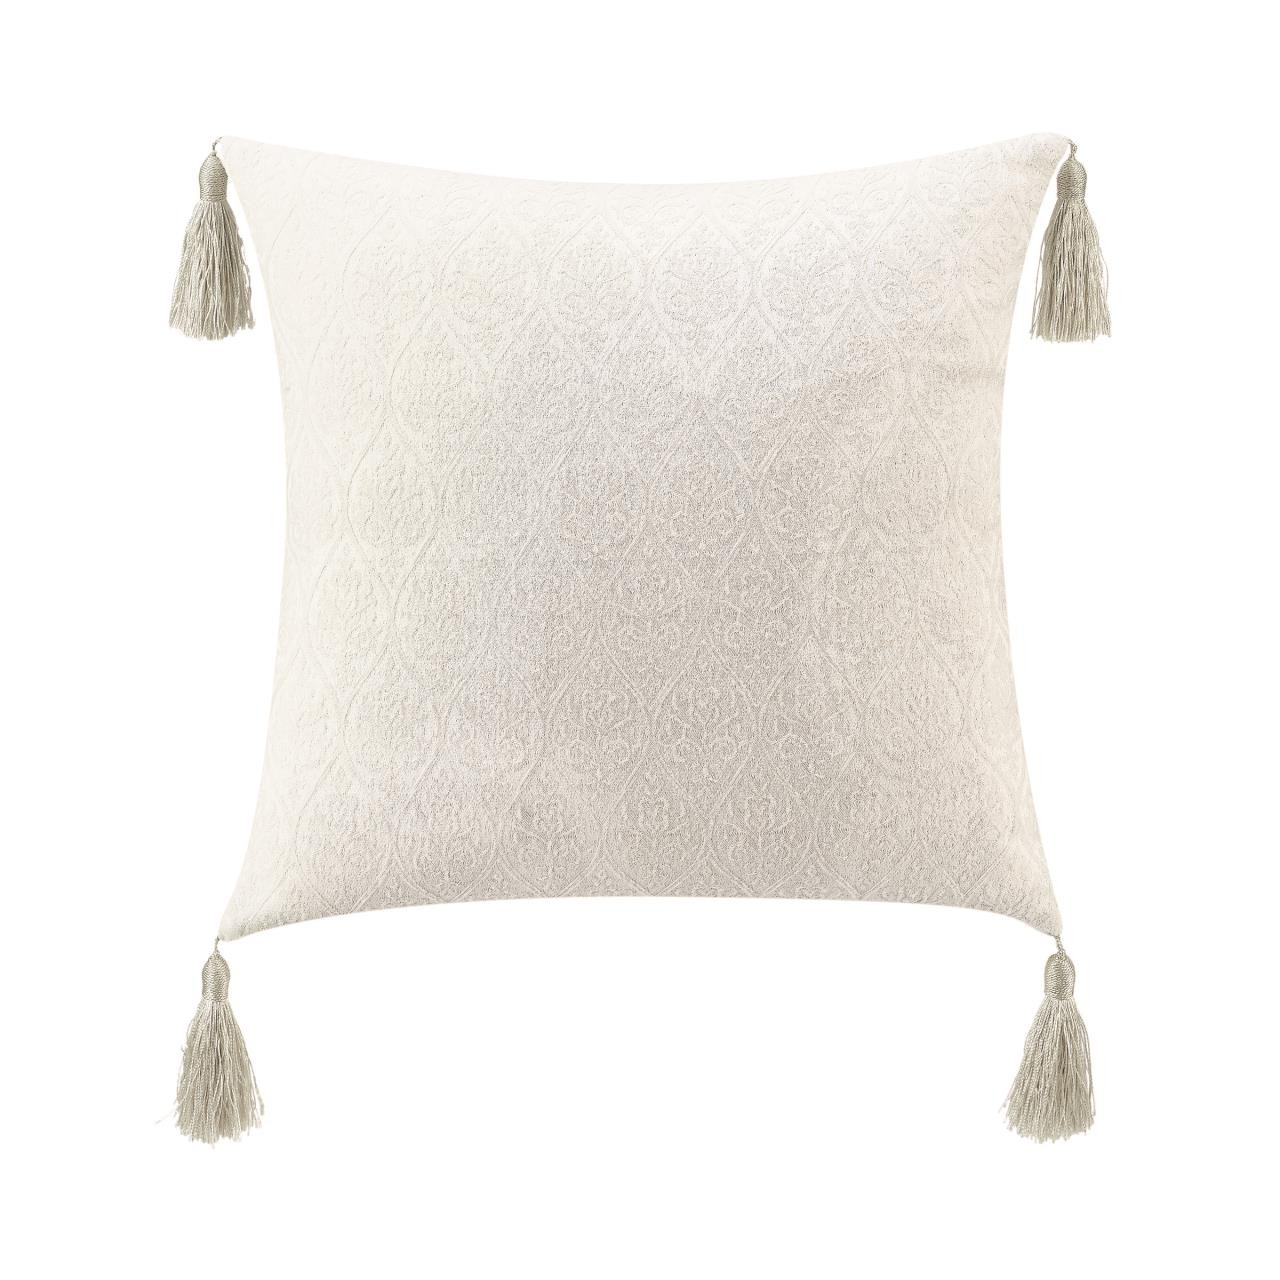 Belline 20w X 20l Tassels Pillow By Waterford Paul S Home Fashions